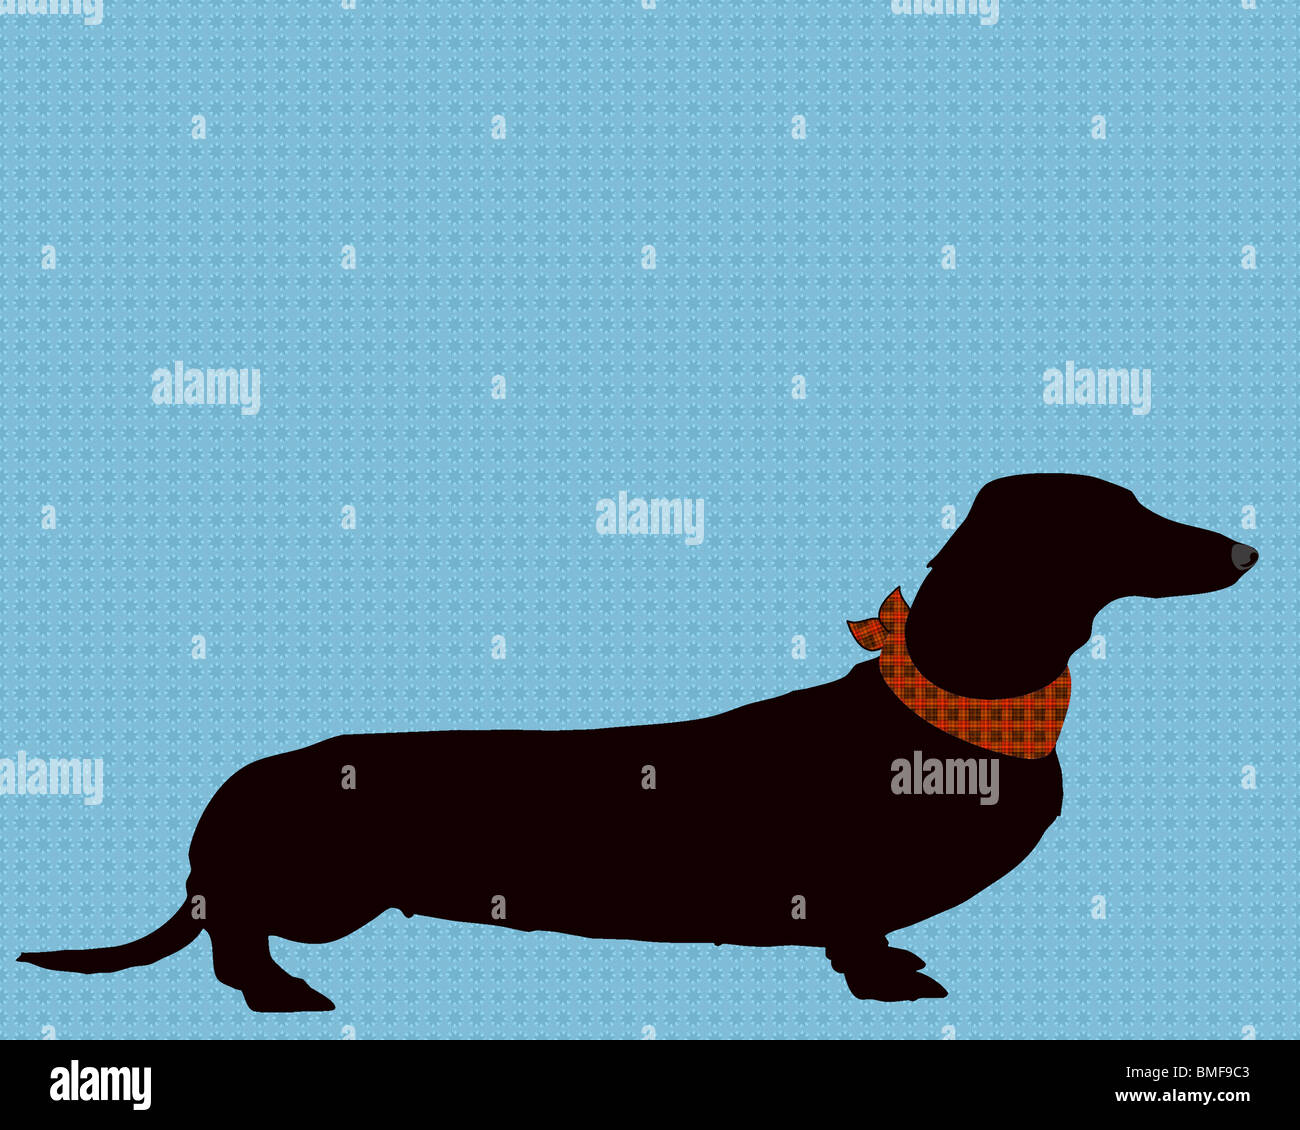 Arte, illustrazione, stampa bassotto, cane, pet, animale, pet lover, amante del cane, silhouette, animali domestici, Immagini Stock